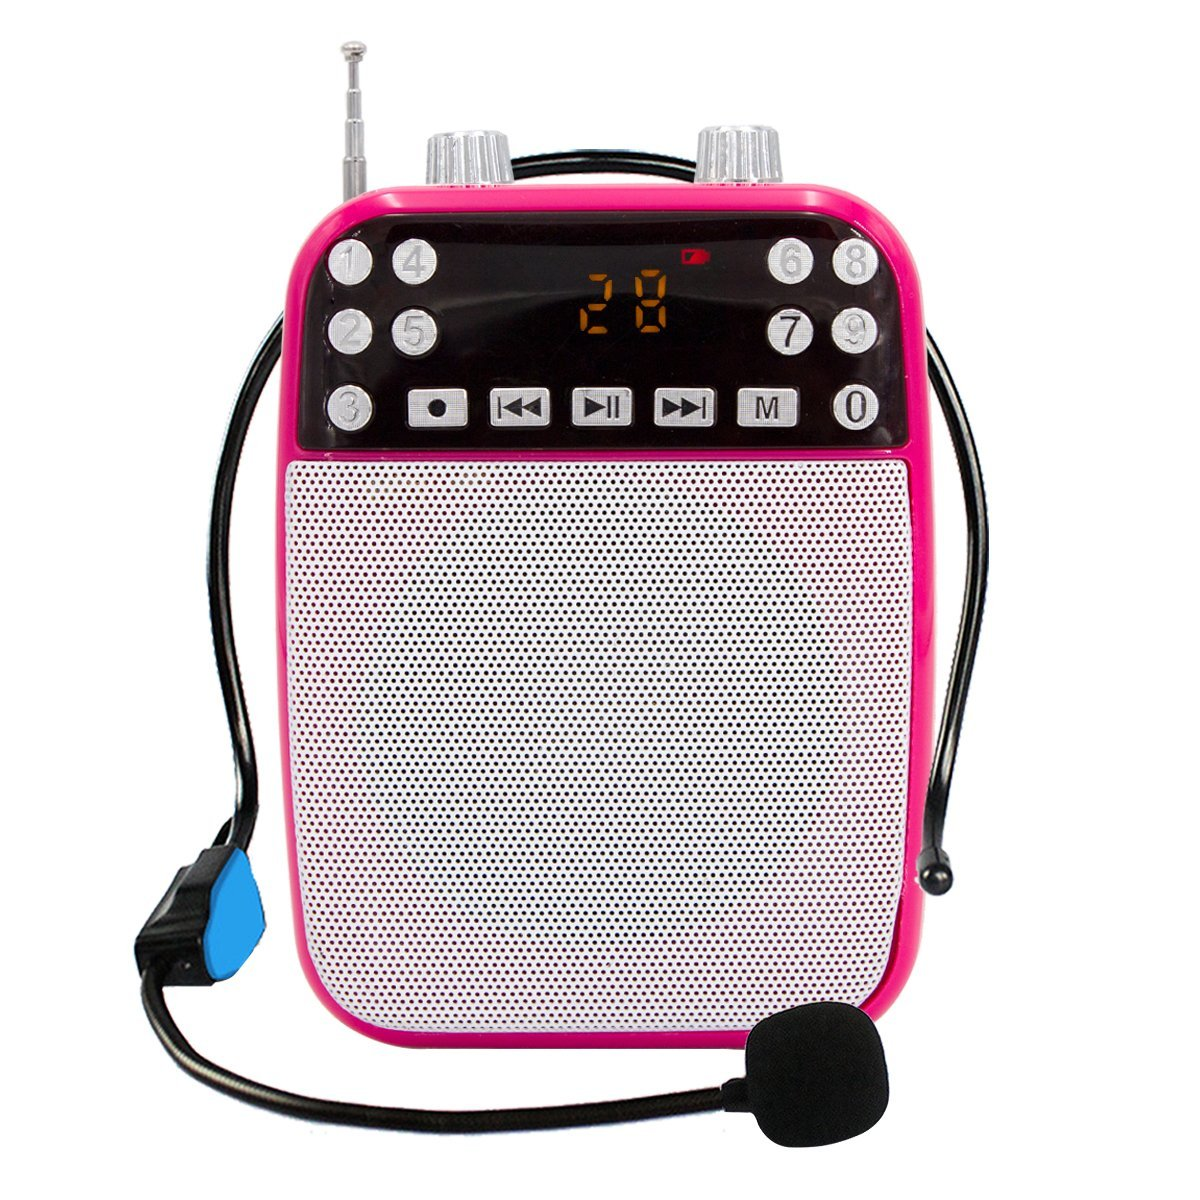 Cheap Teacher Voice Amplifier Portable Microphone Speake Find How To Build Speach Get Quotations Xiaokoa Ultralight With Wired Mp3 Playersd Tf Card